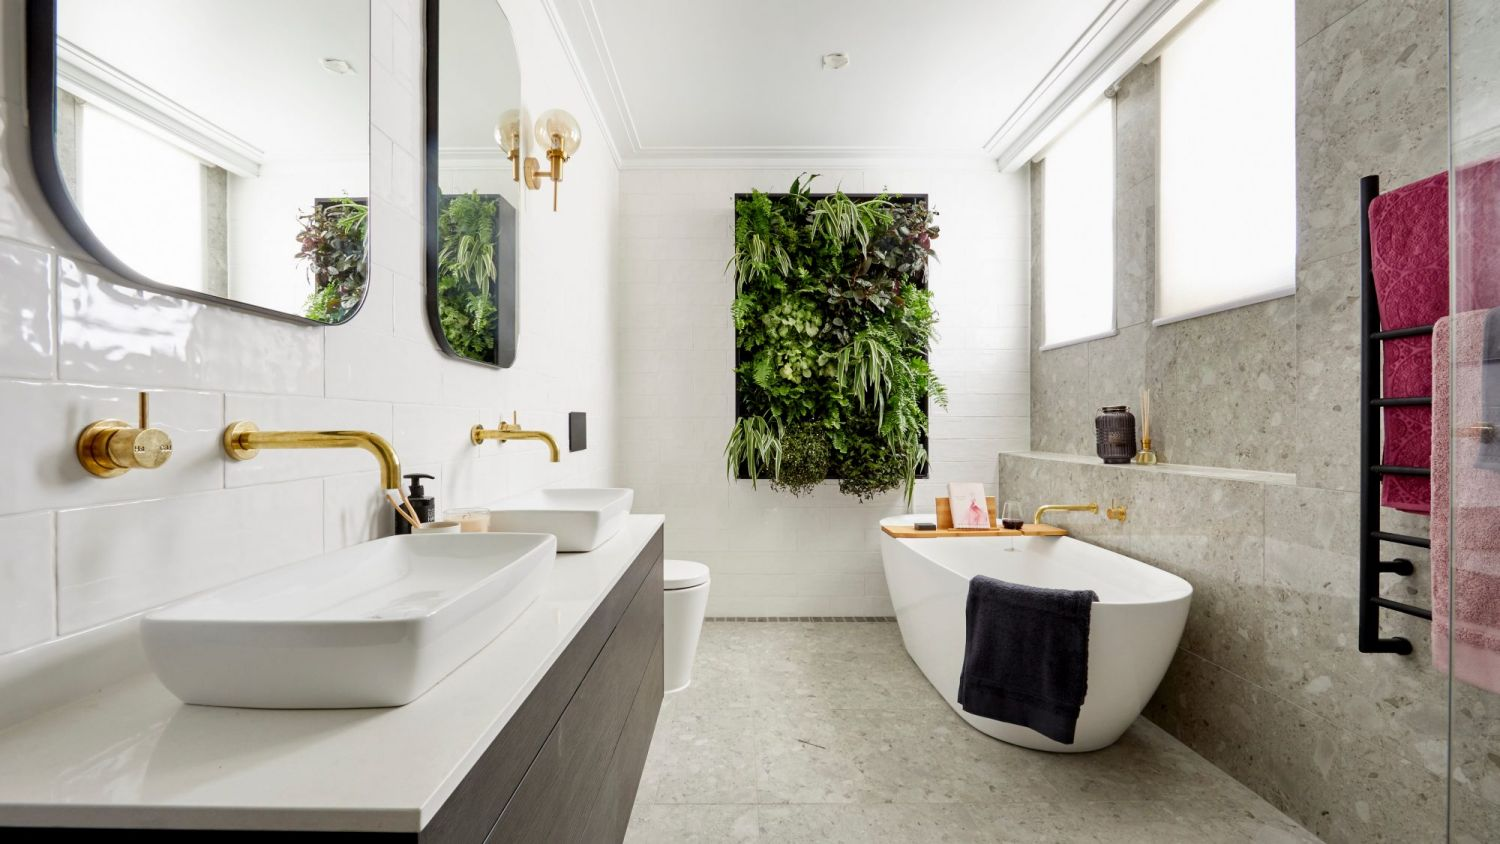 32 Best Master Bathroom Ideas And Designs For 2019: Bathroom Trends 2019